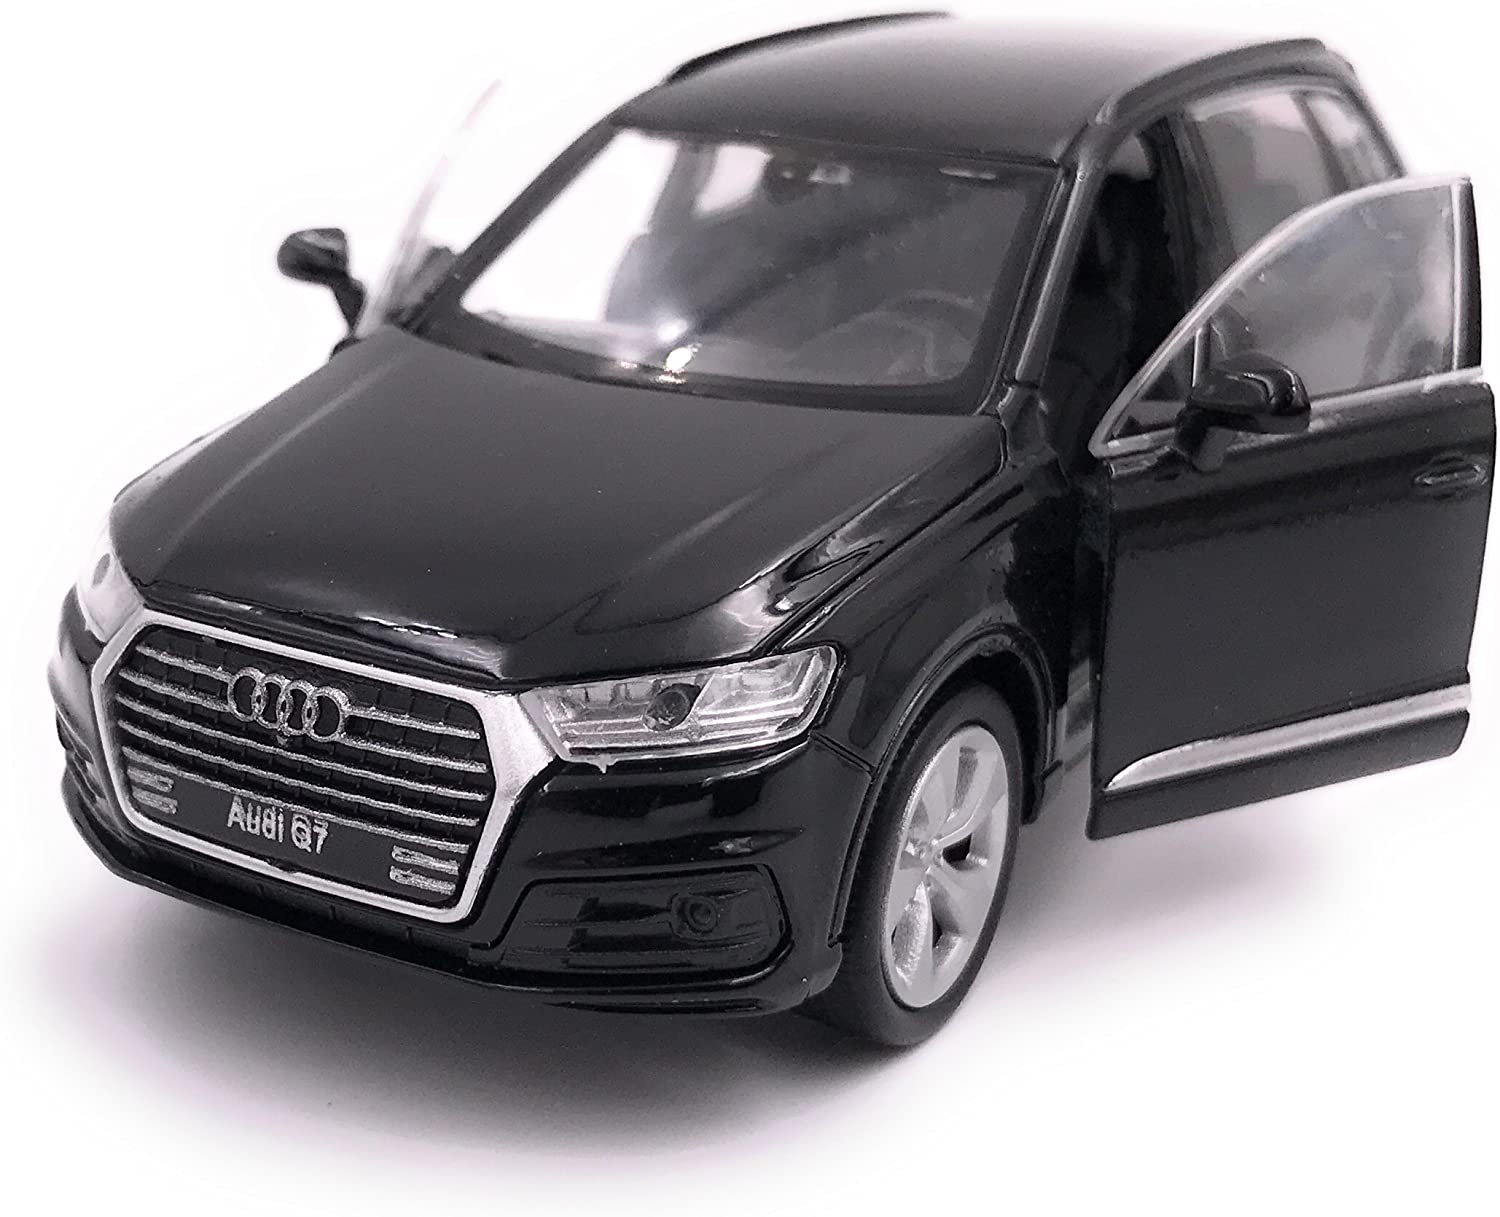 39 Black 34-1 Welly Q7 model car miniature car licensed product 1